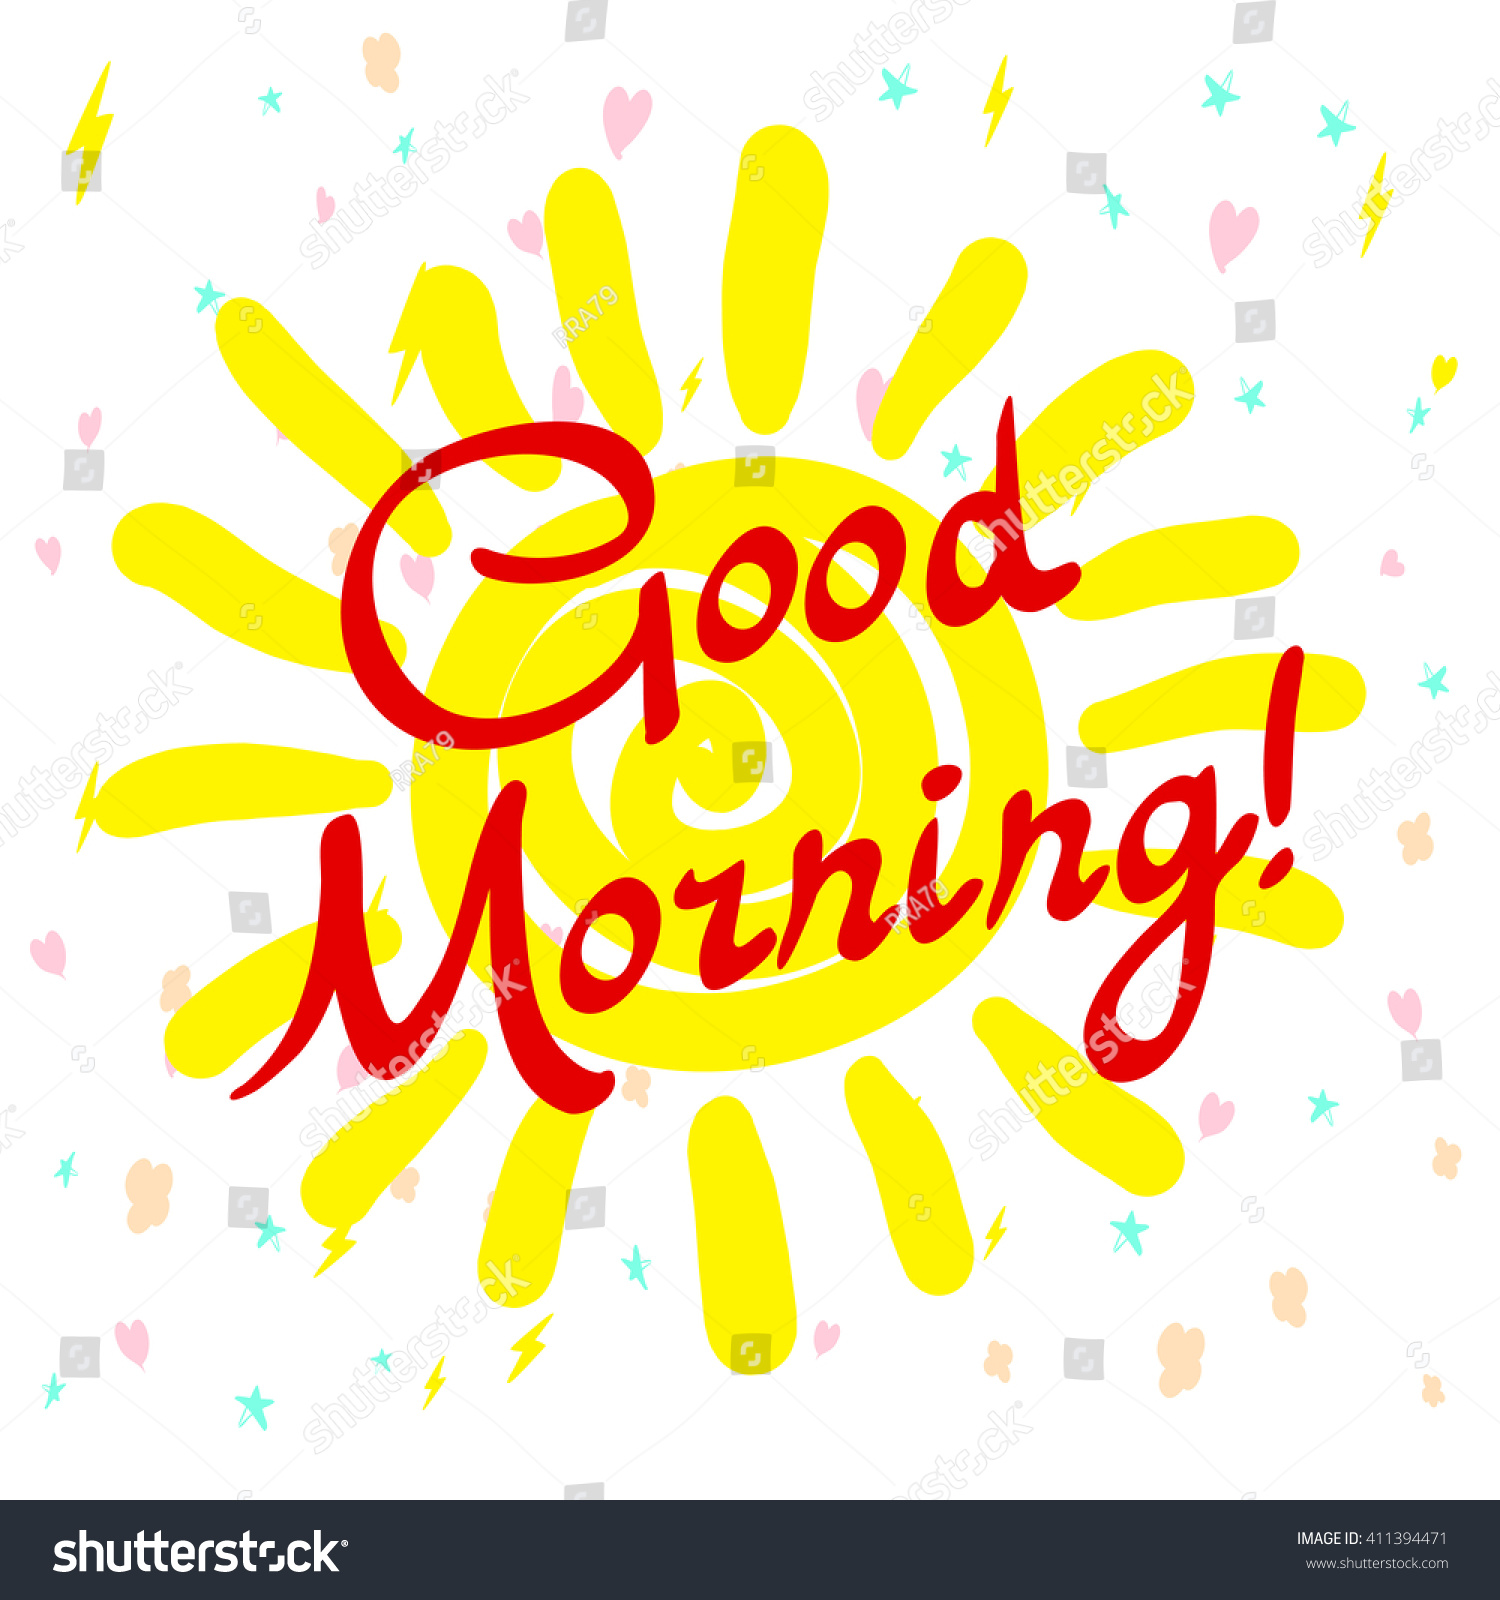 Good Morning Sunshine Letter : Good morning my sunshine handdrawn typographic stock